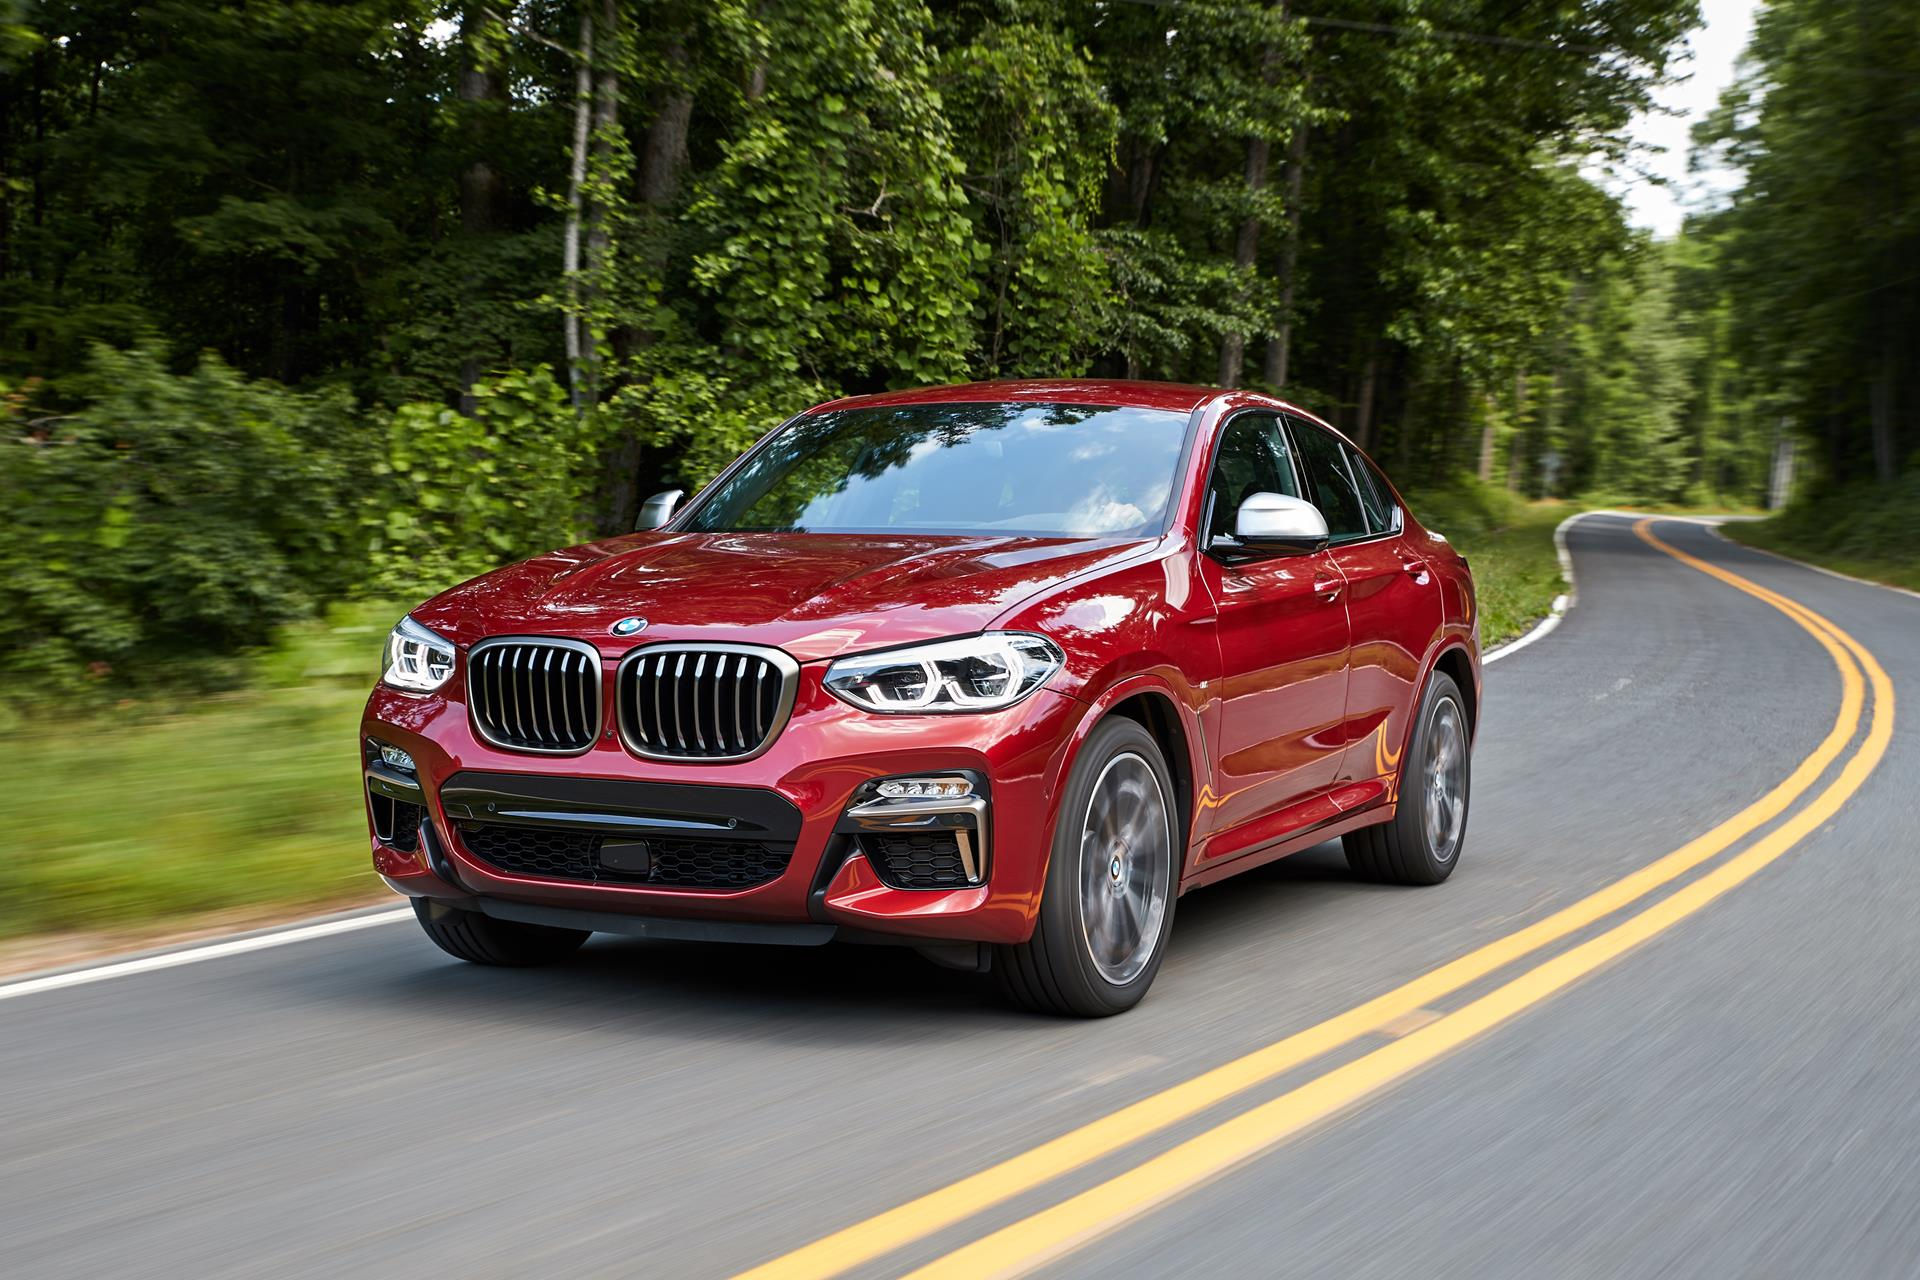 the bmw x4 actually looks pretty decent though is still quite pointless